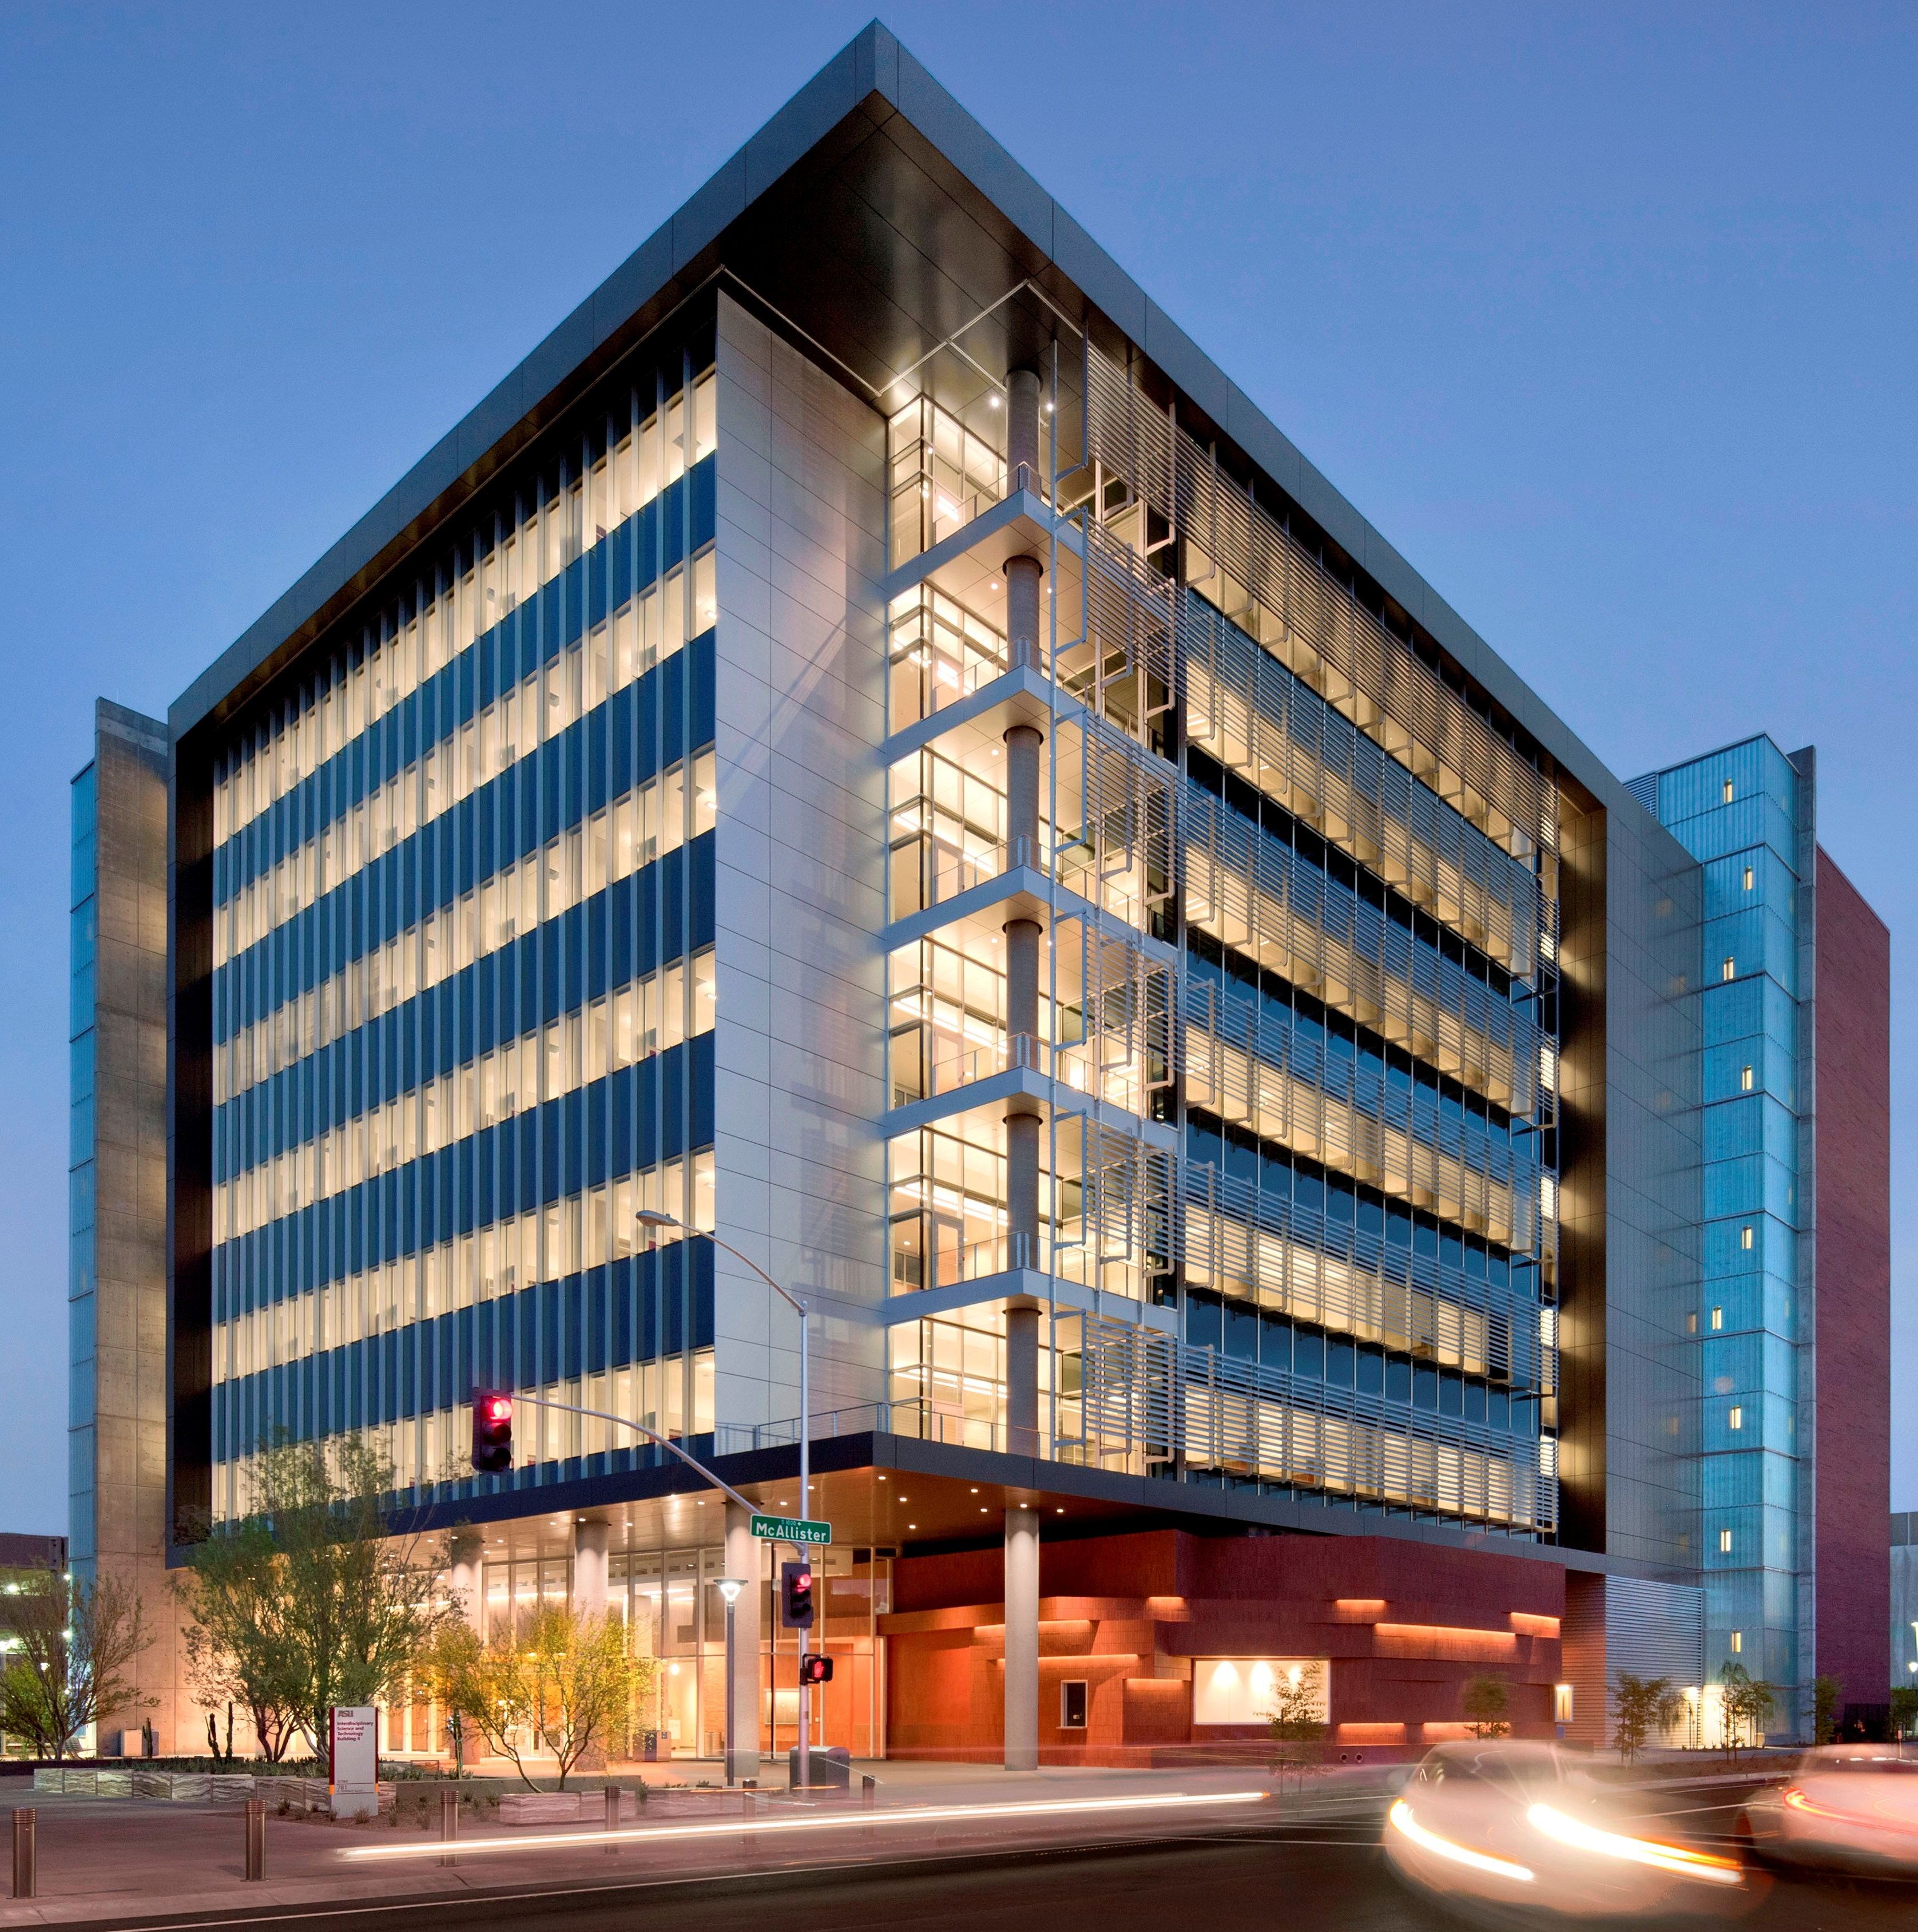 ASU's new science and engineering building will push boundaries of exploration